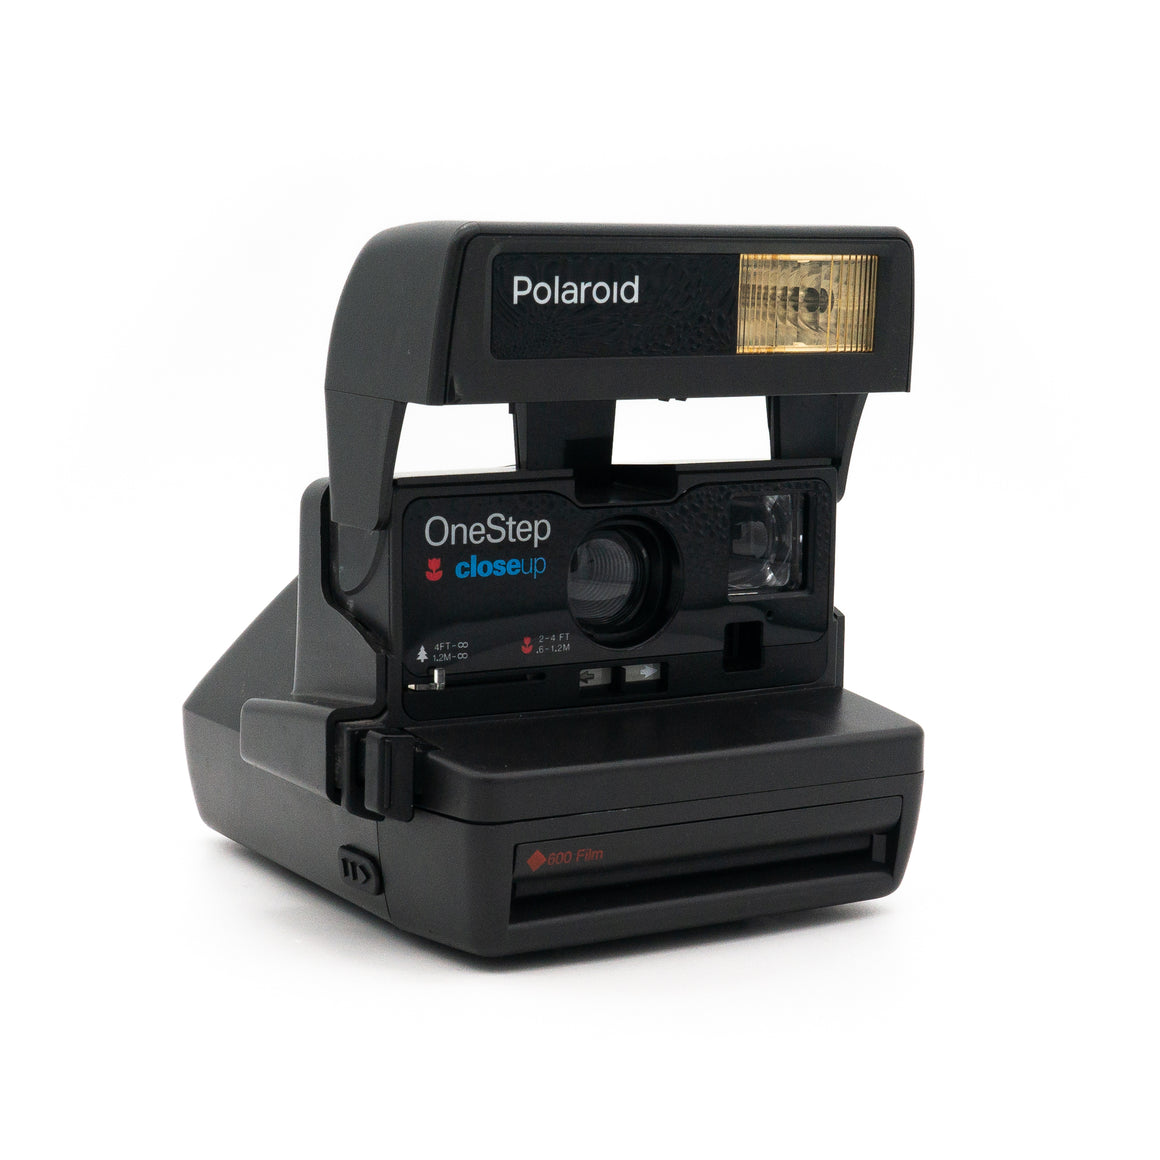 Polaroid OneStep Closeup (600) Instant Film Camera